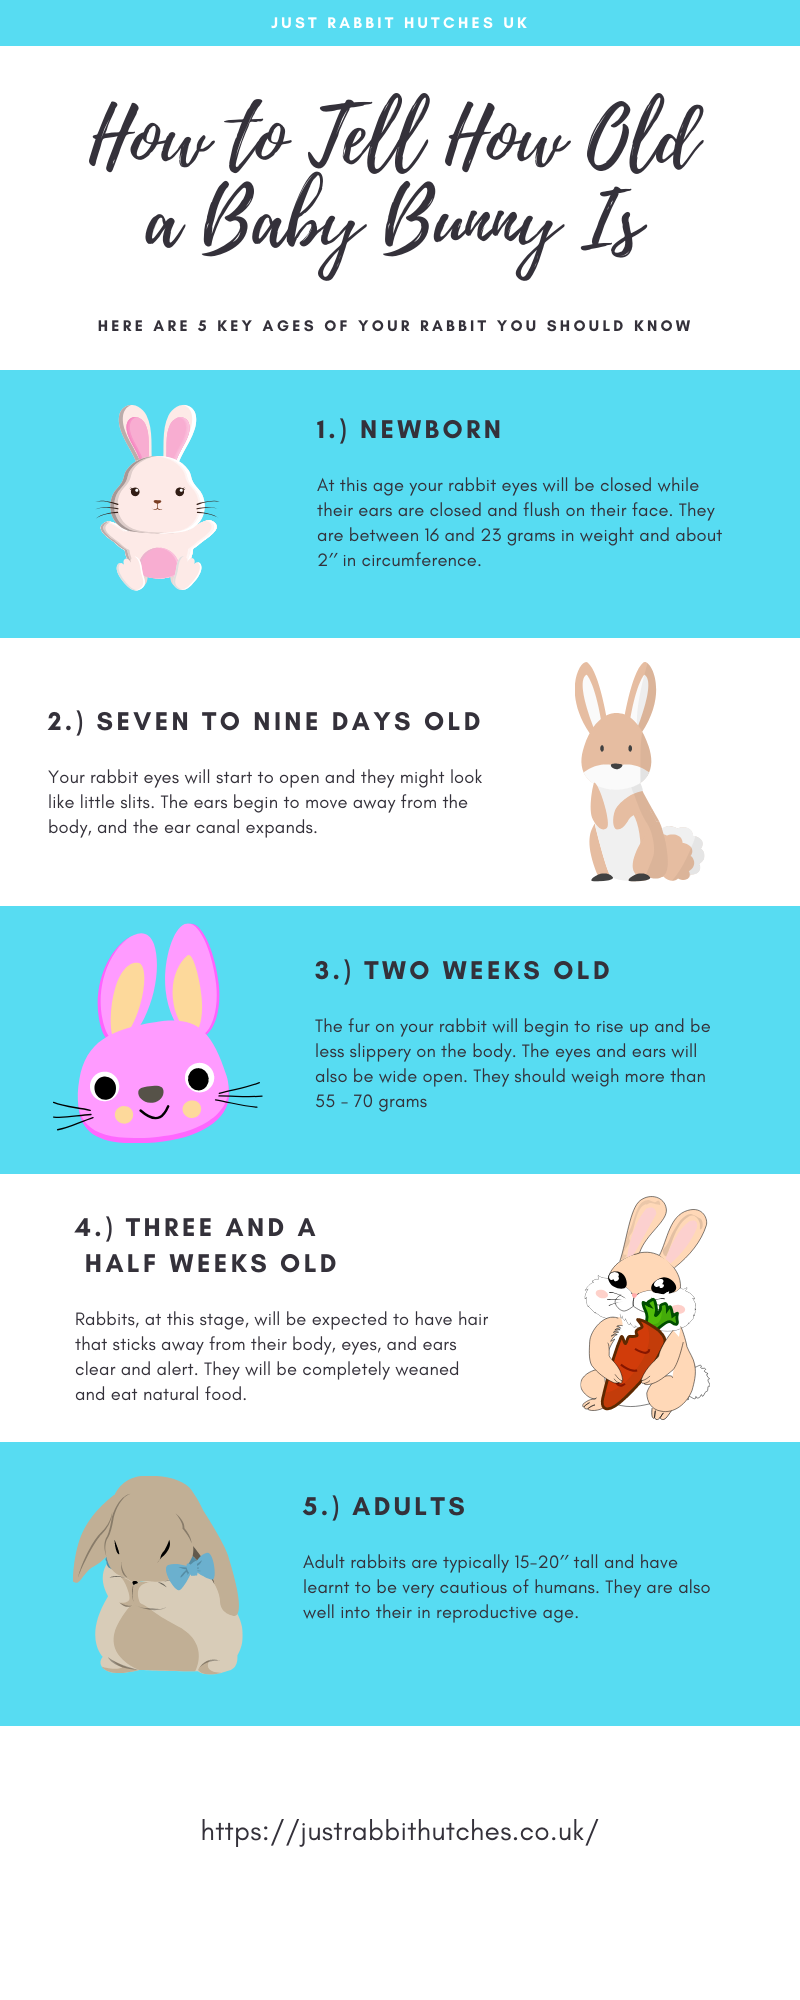 How to Tell How Old a Baby Bunny Is